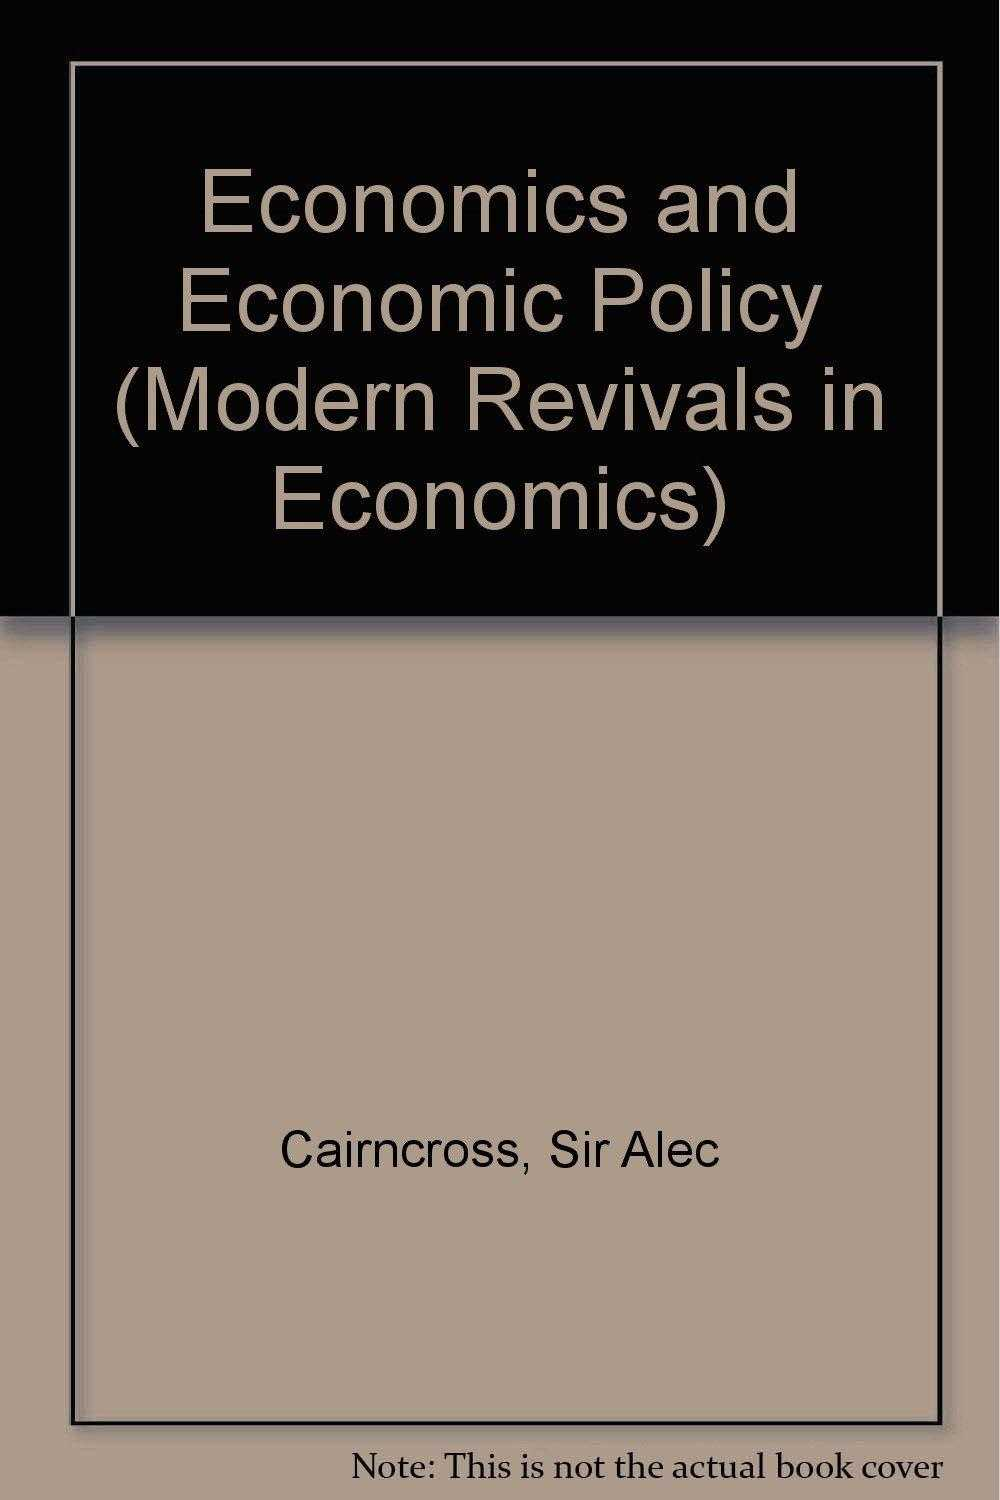 Economics and Economic Policy. (Modern Revivals in Economics), Cairncross, Sir Alec